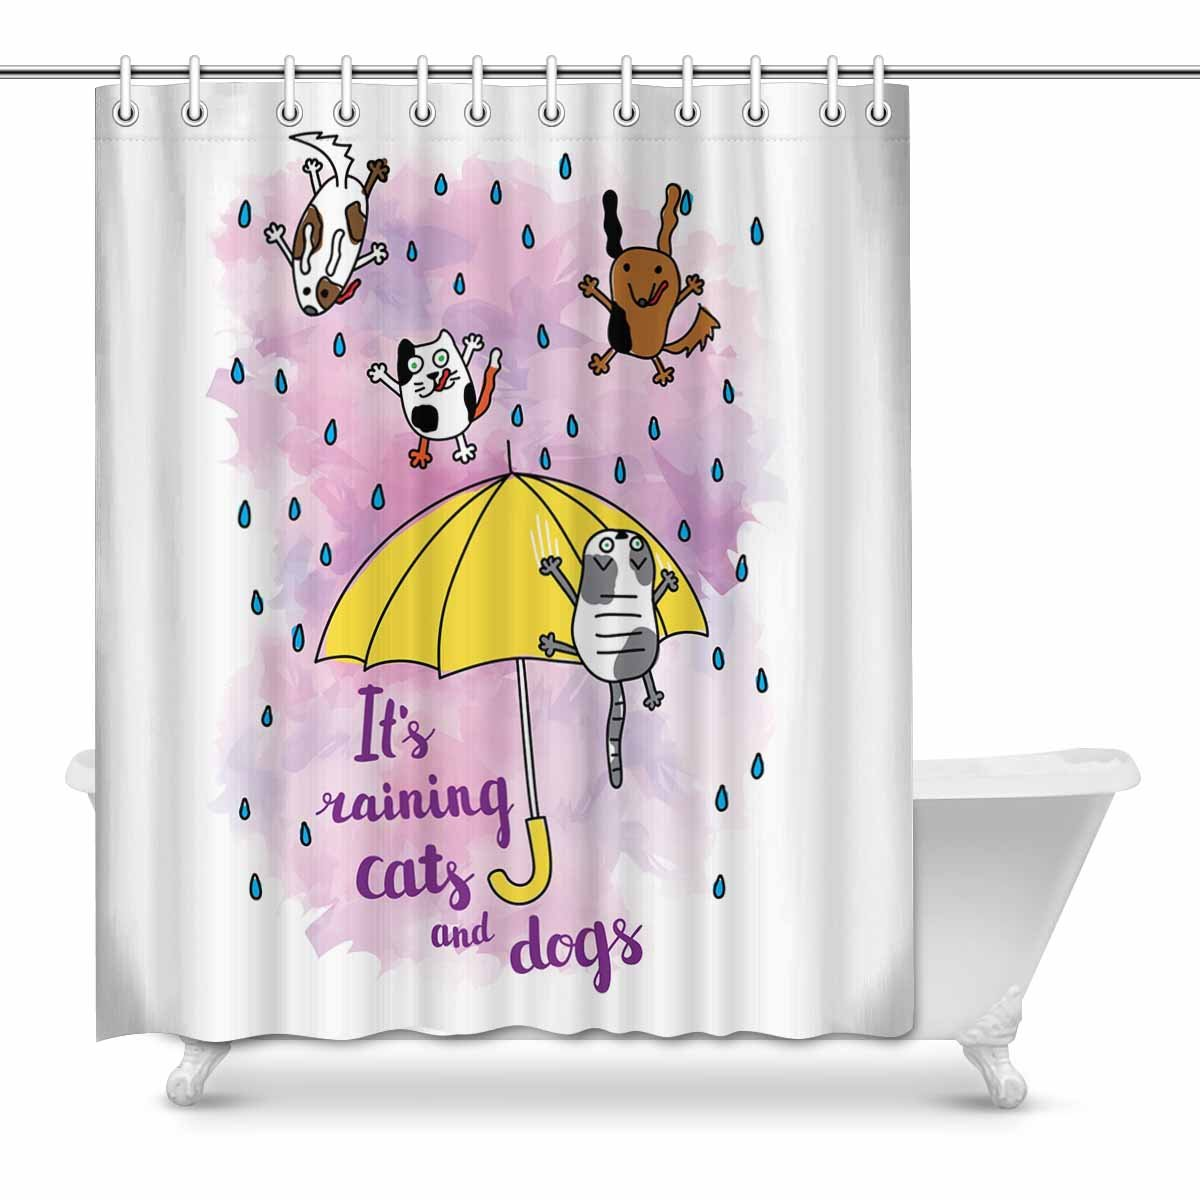 Mkhert Funny Watercolor It S Raining Cats And Dogs Decor Waterproof Polyester Bathroom Shower Curtain Bath 60x72 Inch Walmart Com